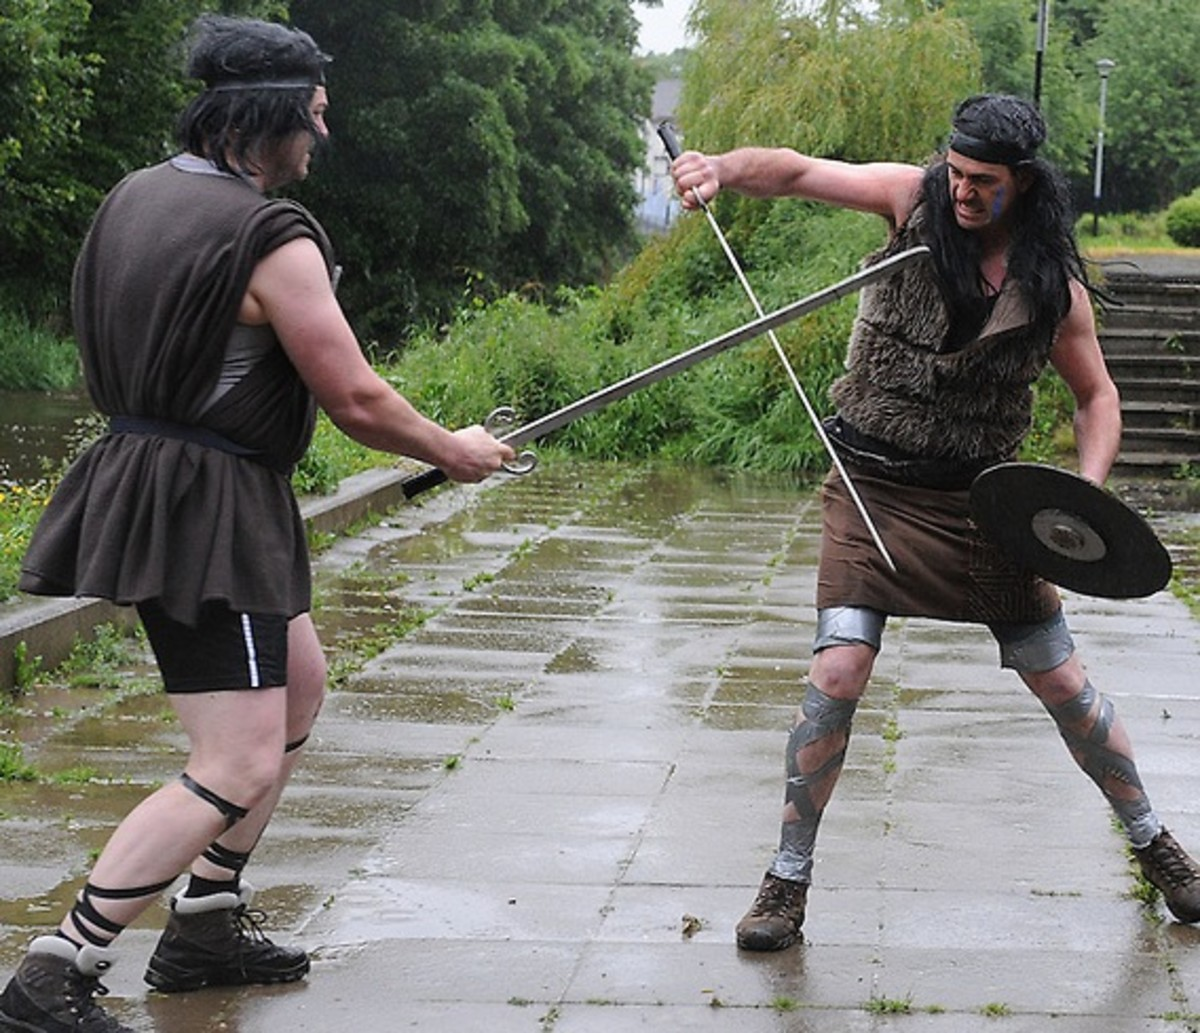 Re-enactment of Cuchulainn in combat with Connlai